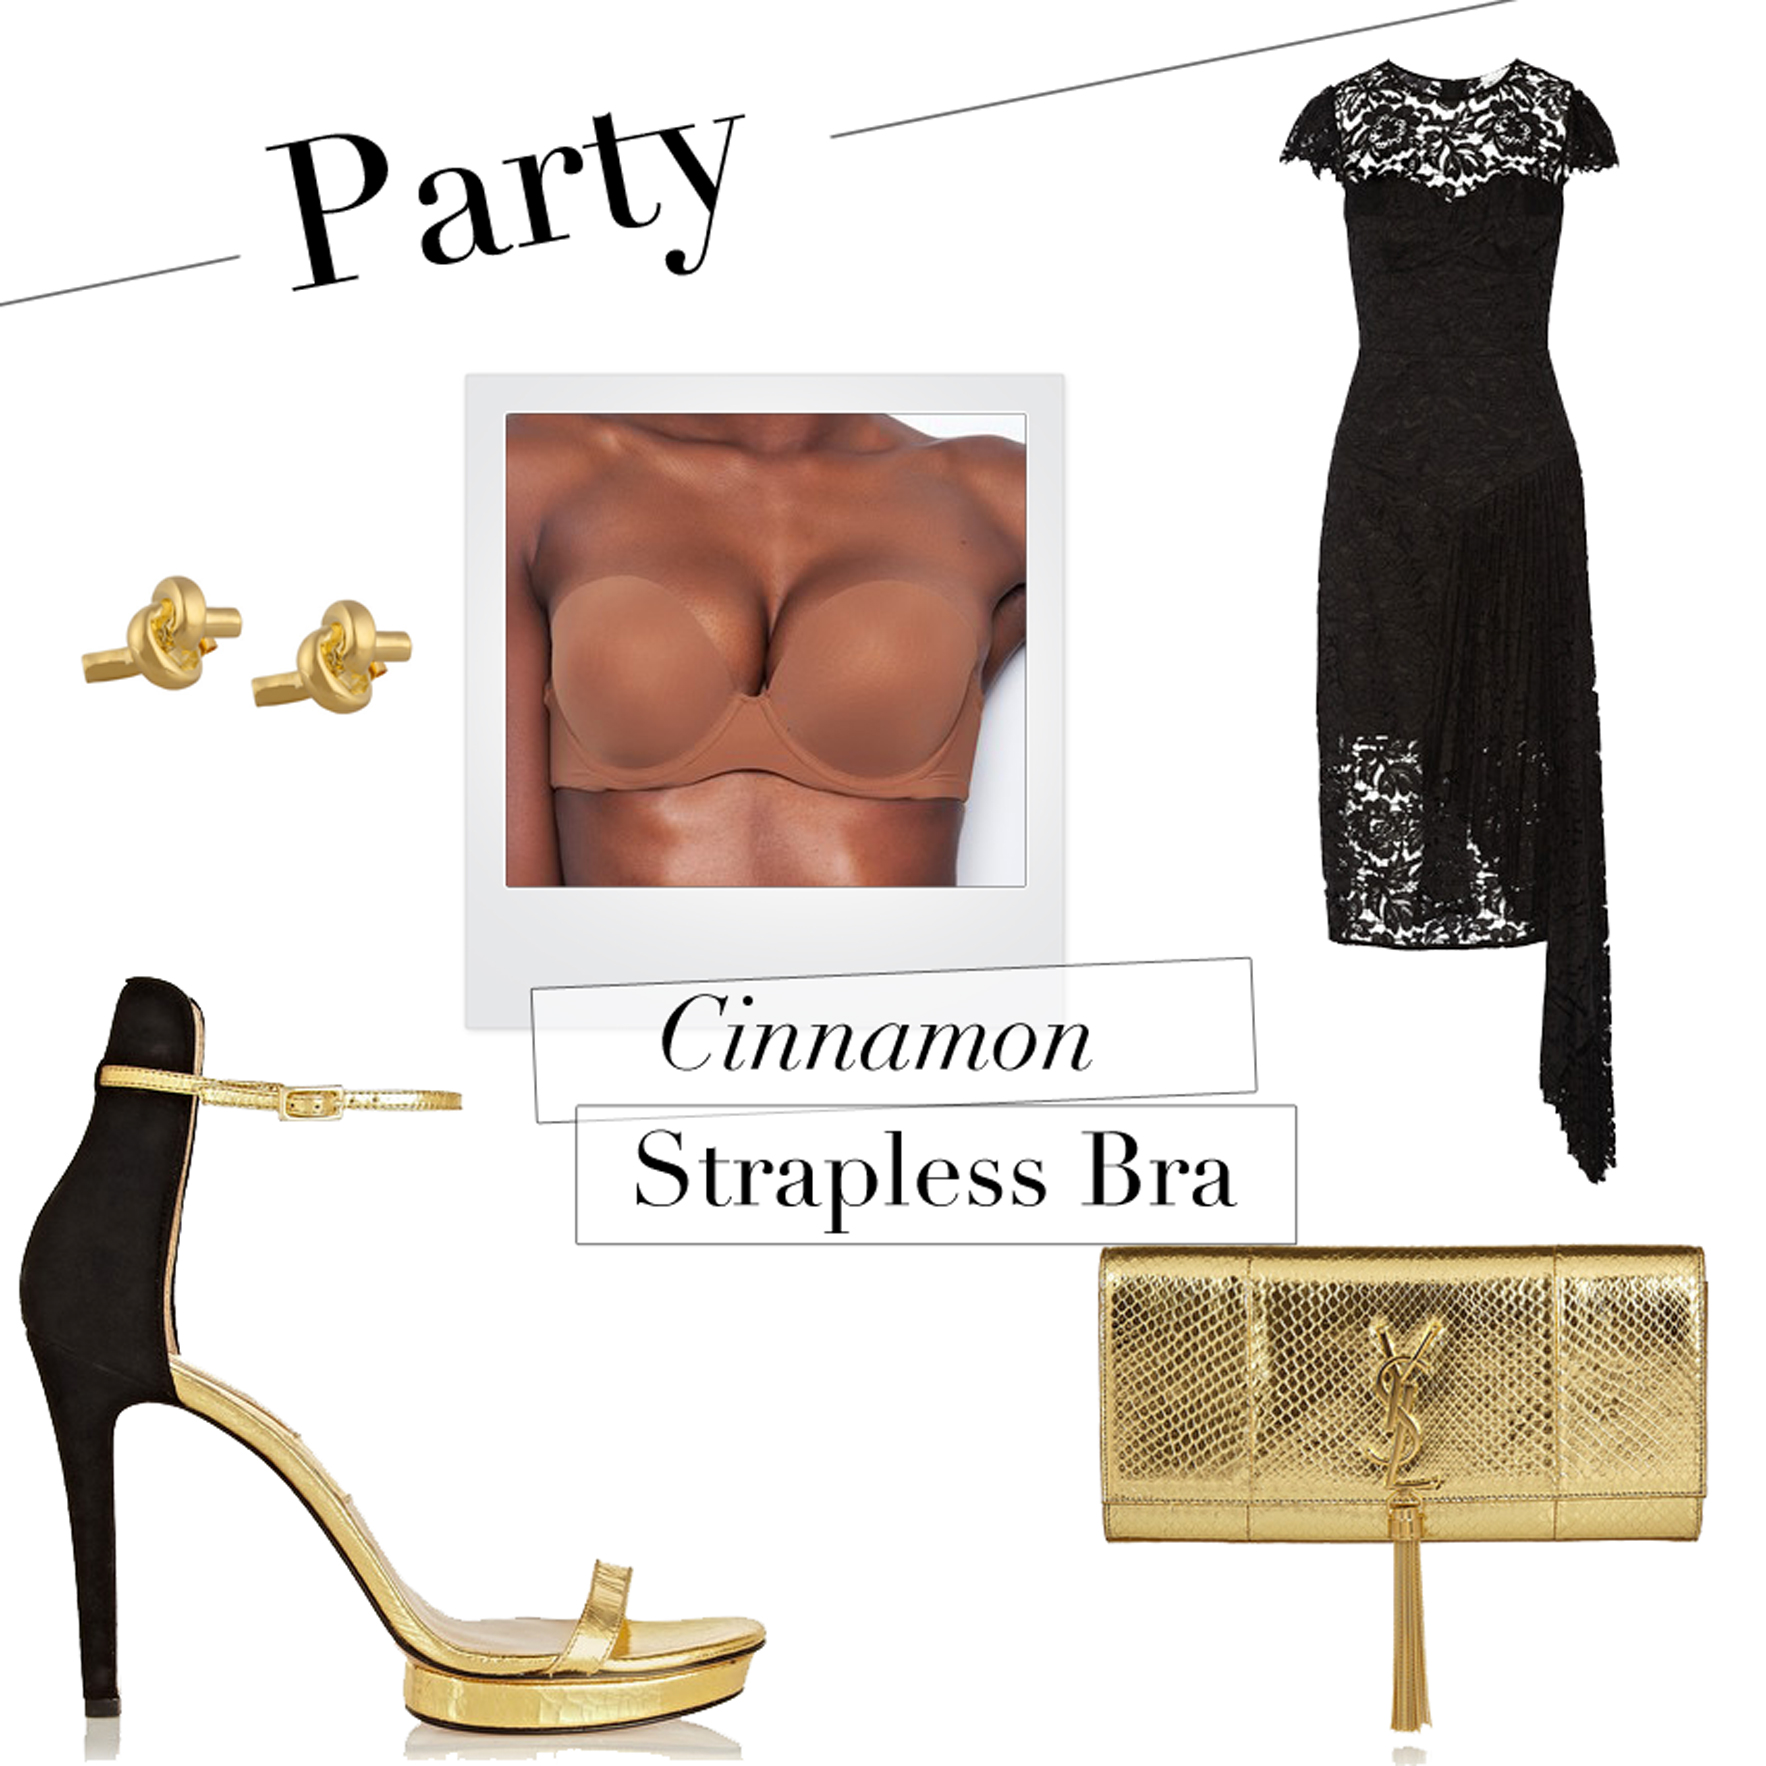 party-outfit-inspiration-nubian-skin-lingerie-01